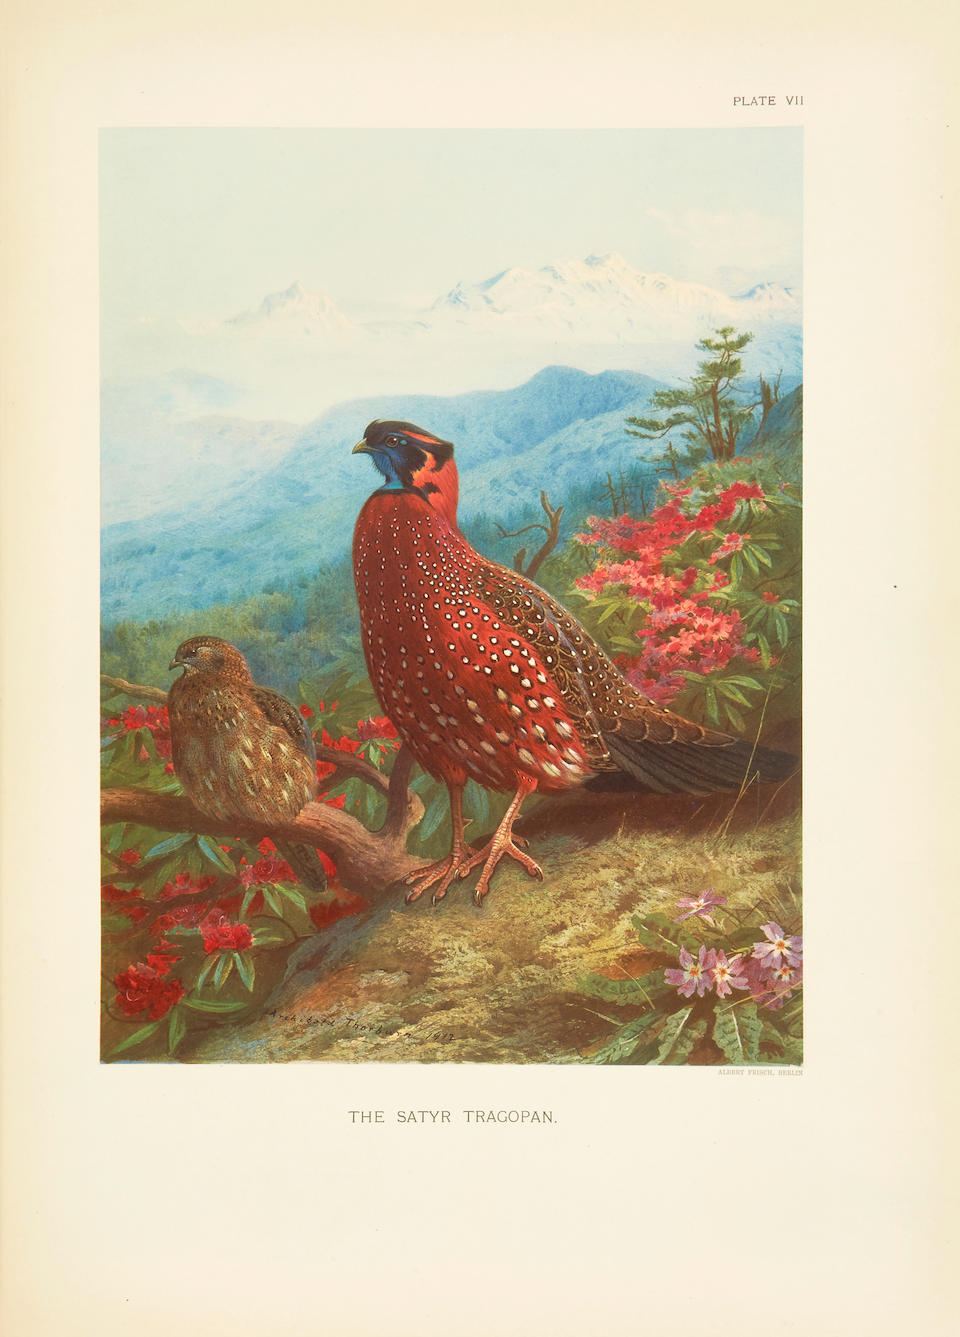 BEEBE, CHARLES WILLIAMS. 1877-1962. A Monograph of the Pheasants.  London: Witherby & Co. (under the auspices of the New York Zoological Society), 1918-22.